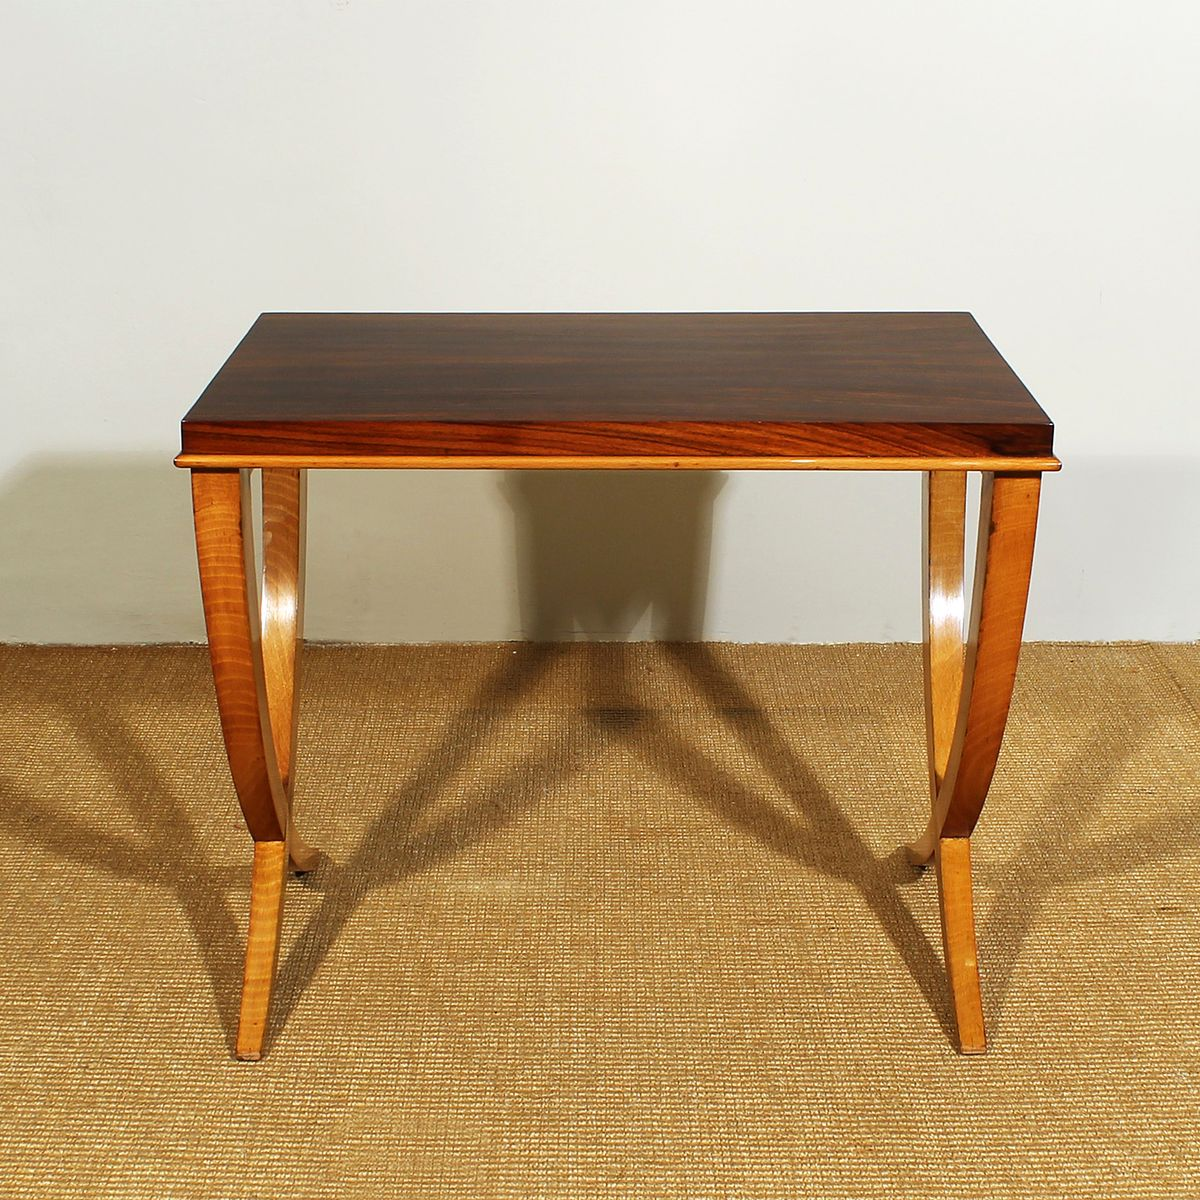 Amazing photo of Beech & Rosewood Nesting Tables by De Coene 1940s Set of 3 for sale  with #B47D18 color and 1200x1200 pixels